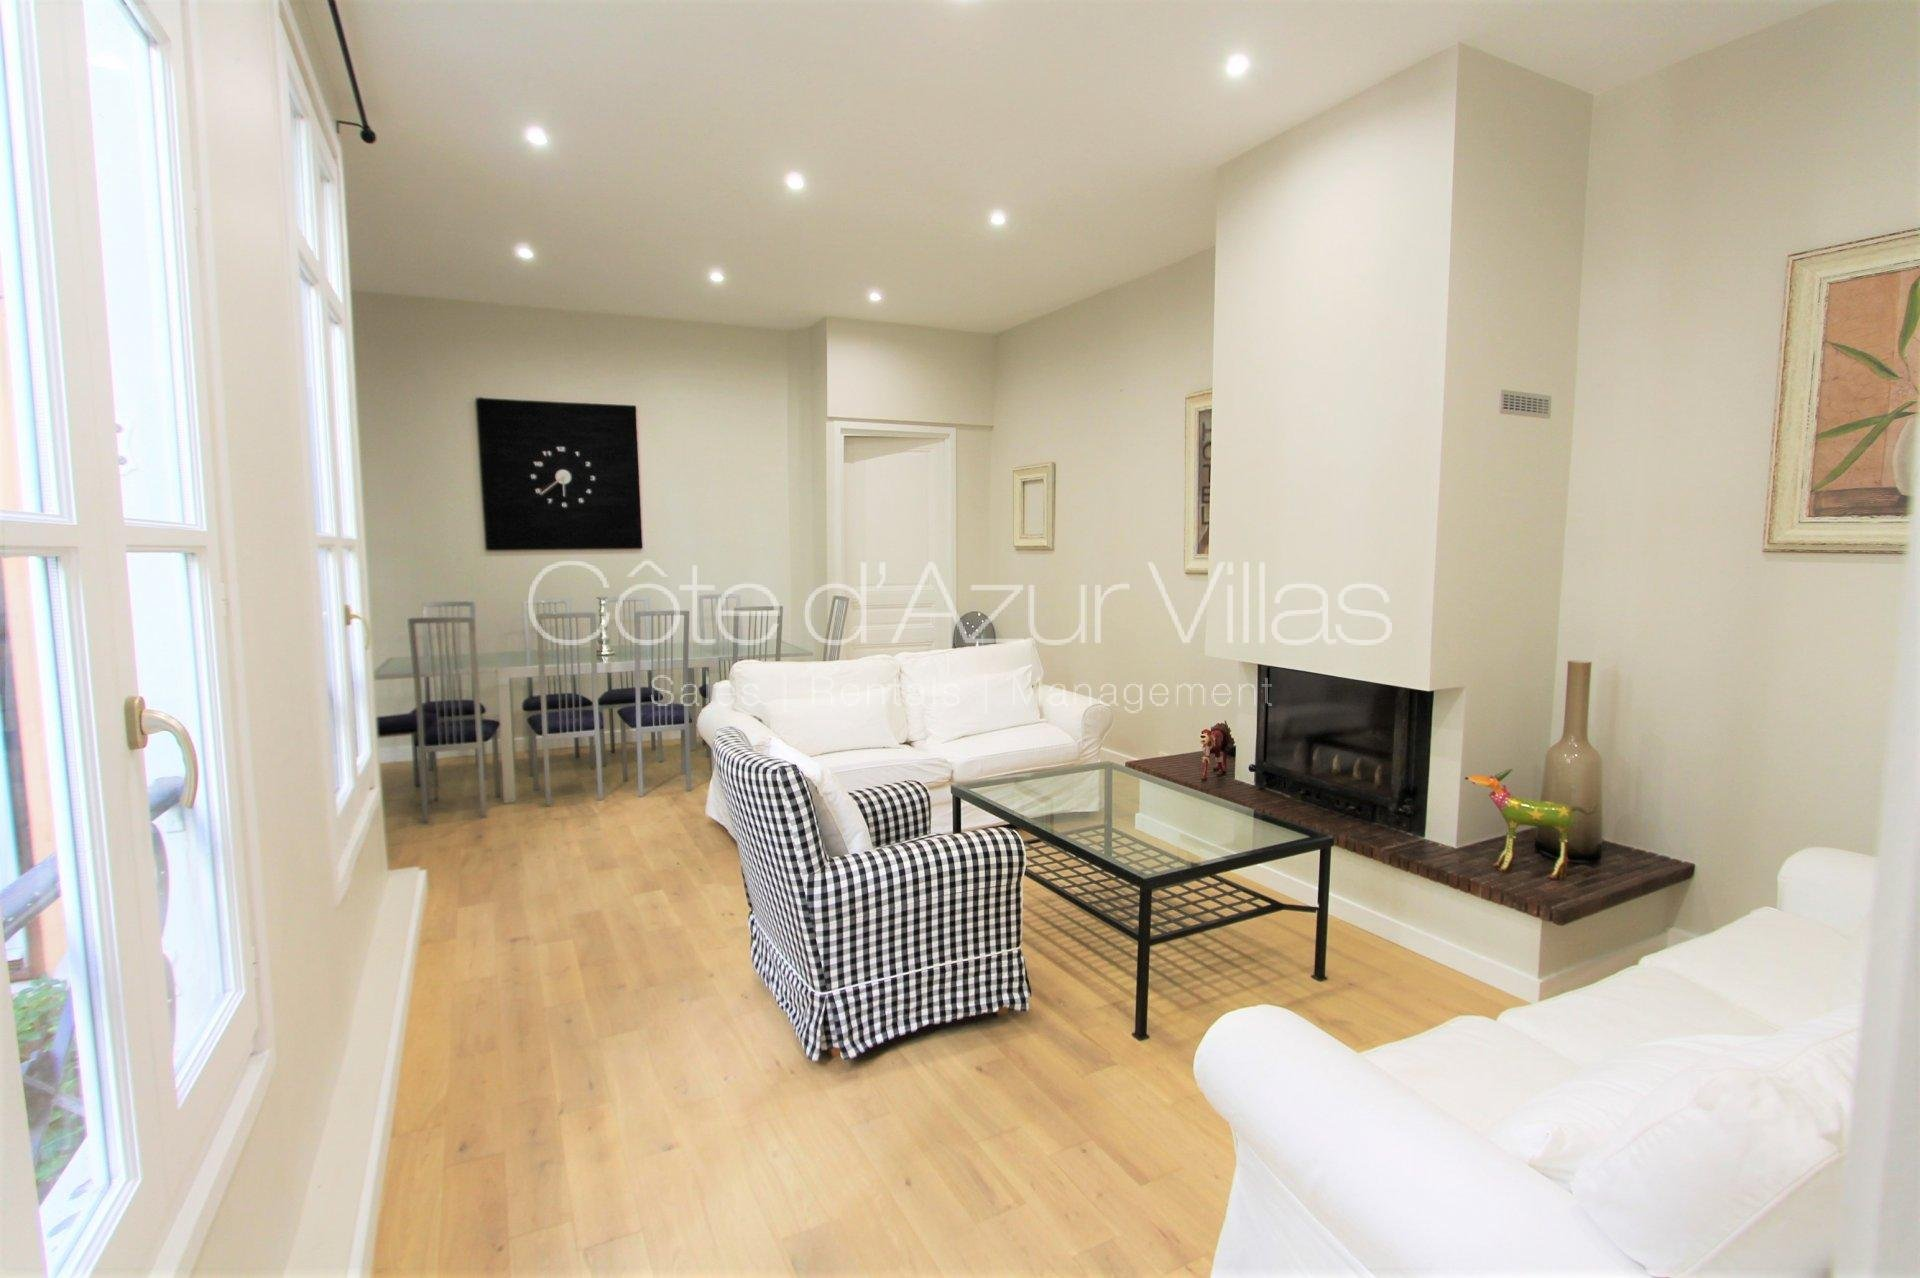 Cannes Banane - Apt with Garden patio in the center